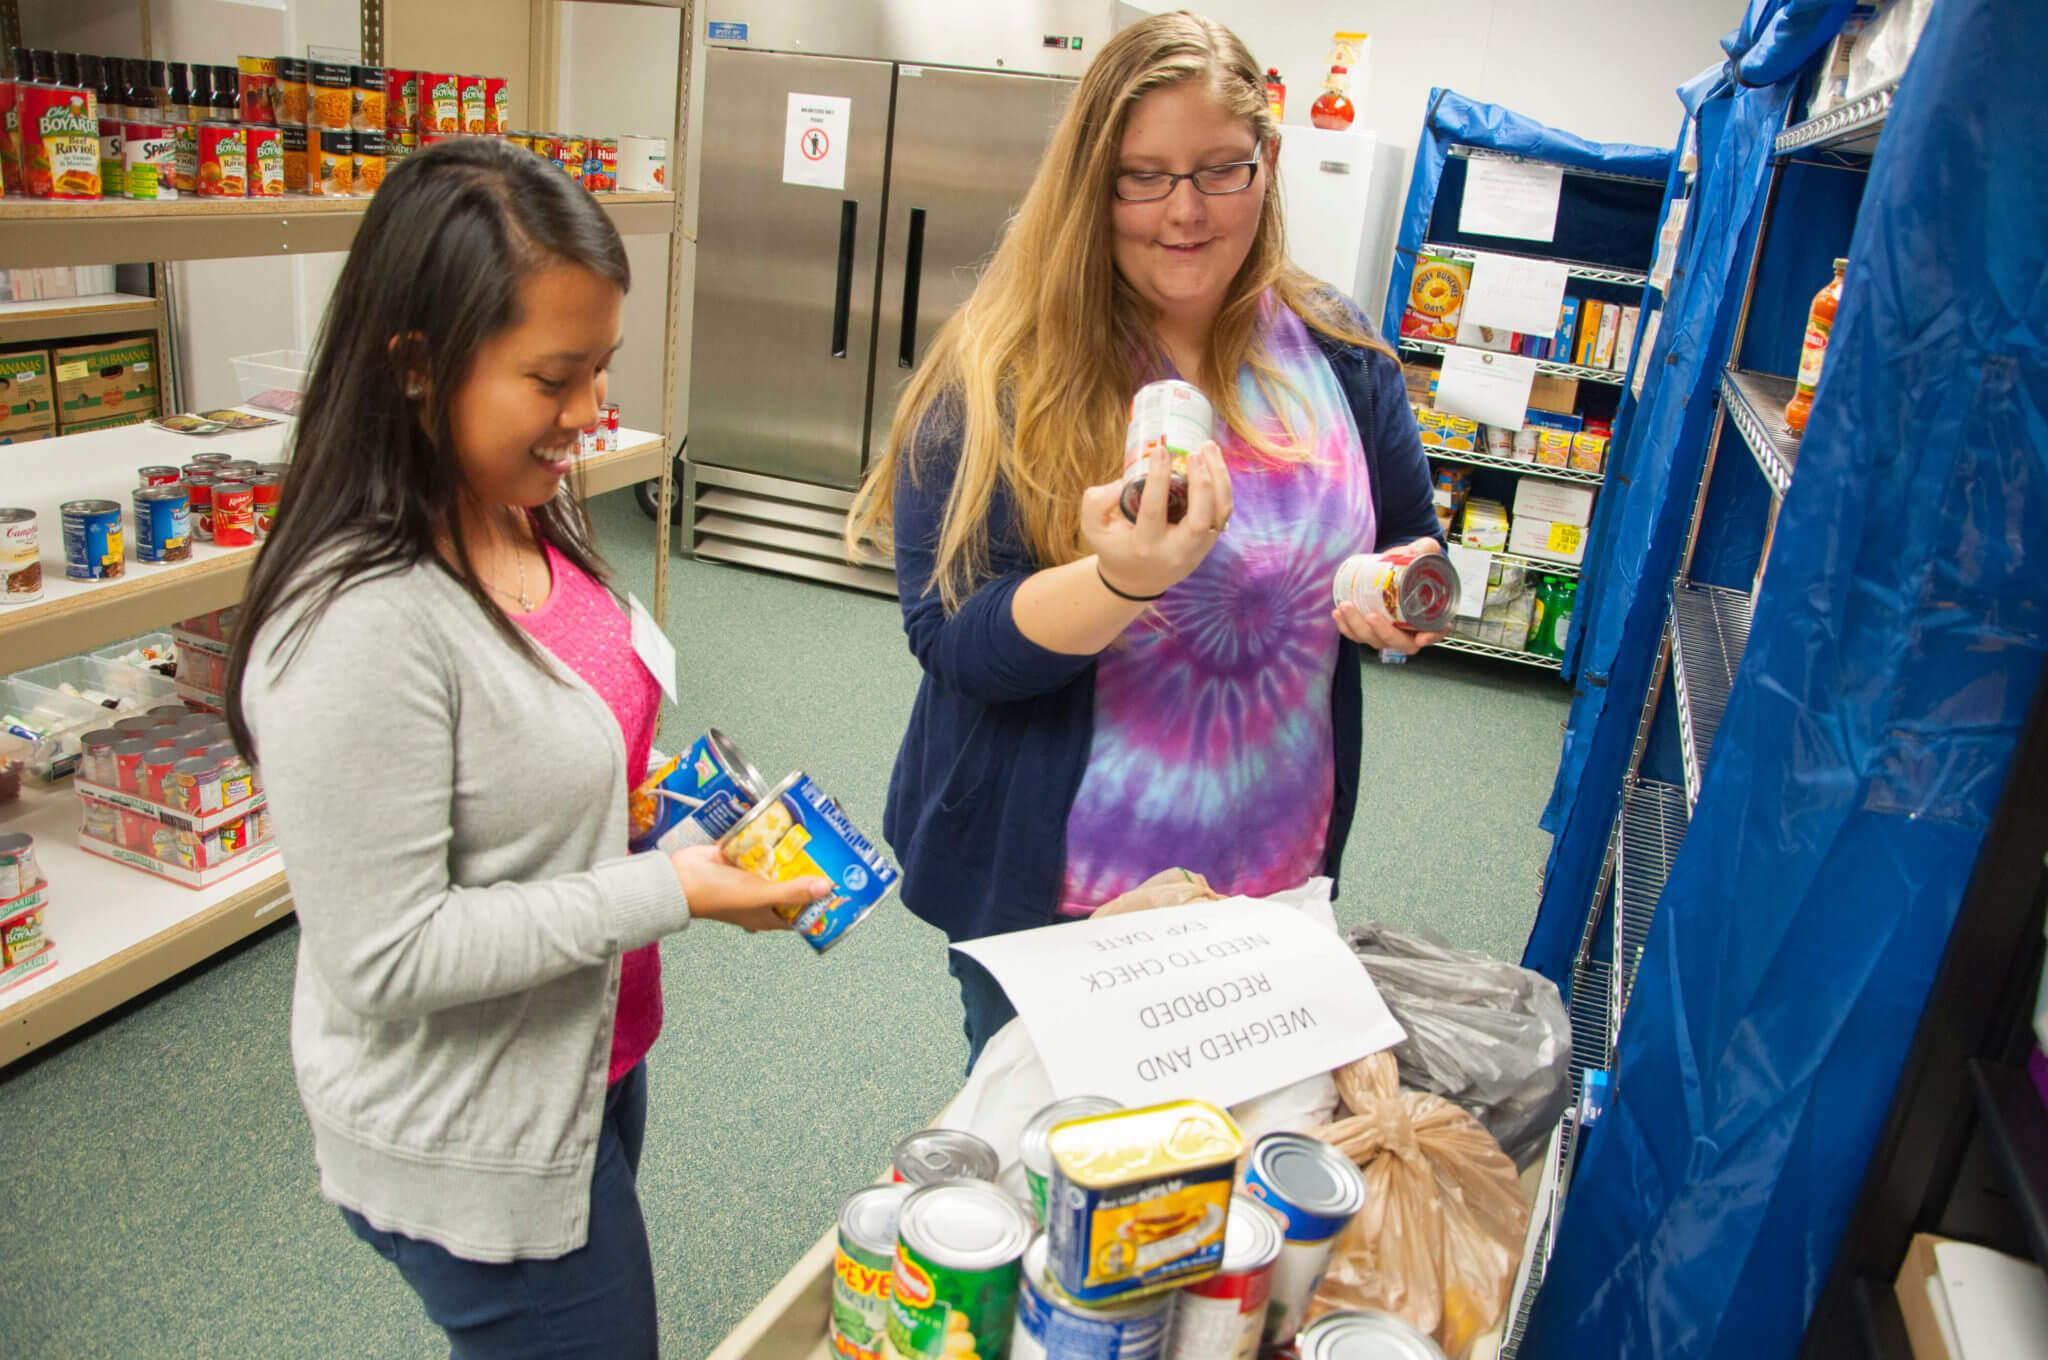 Feeding those in need: Students volunteer at the Campus Food Pantry